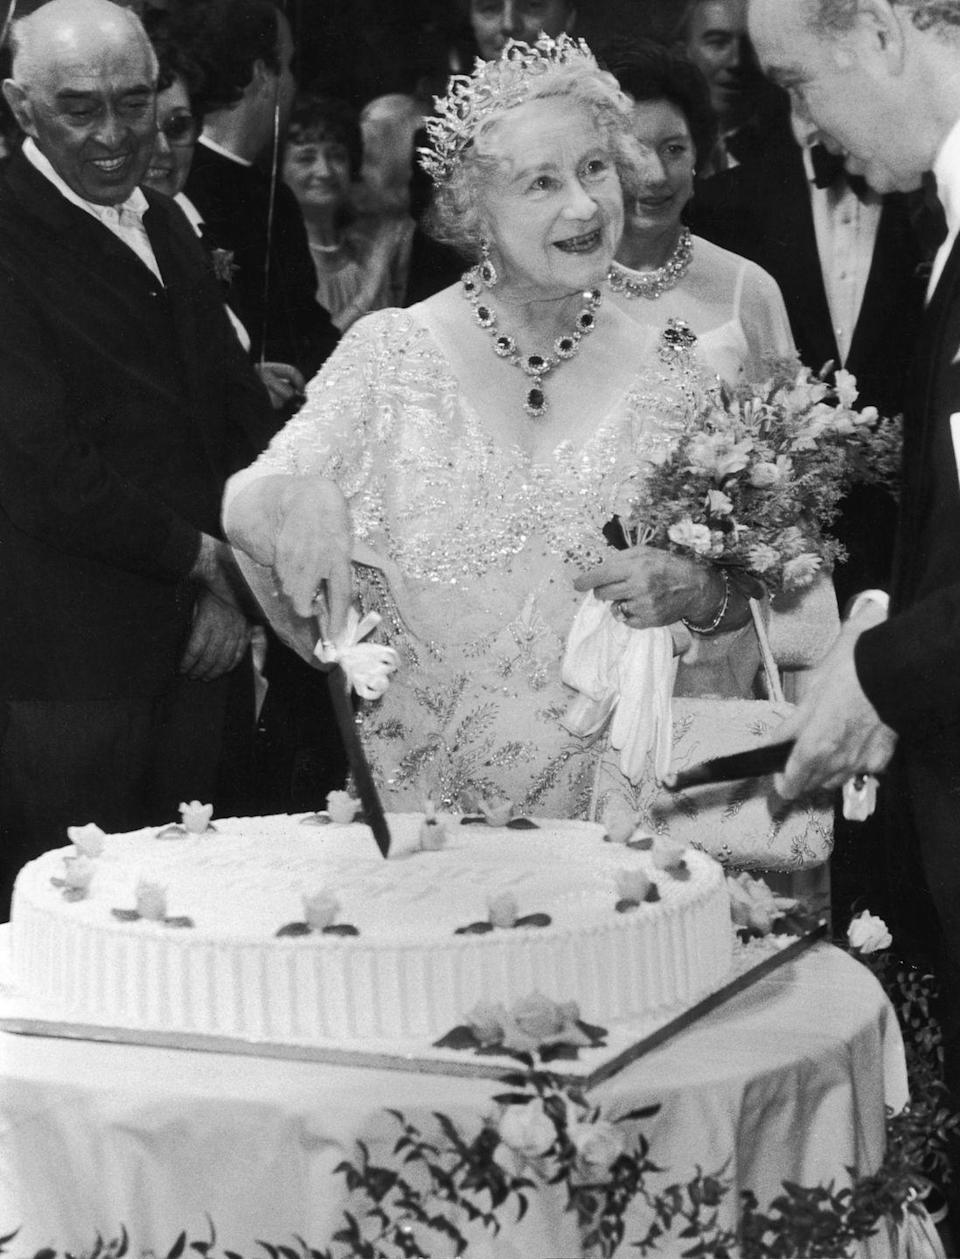 <p>On her 80th birthday, the Queen Mother cut into her cake at a party in Covent Garden. Other special festivities surrounding her celebration included a private dinner at Downing Street thrown by Prime Minister Thatcher and her husband. </p>